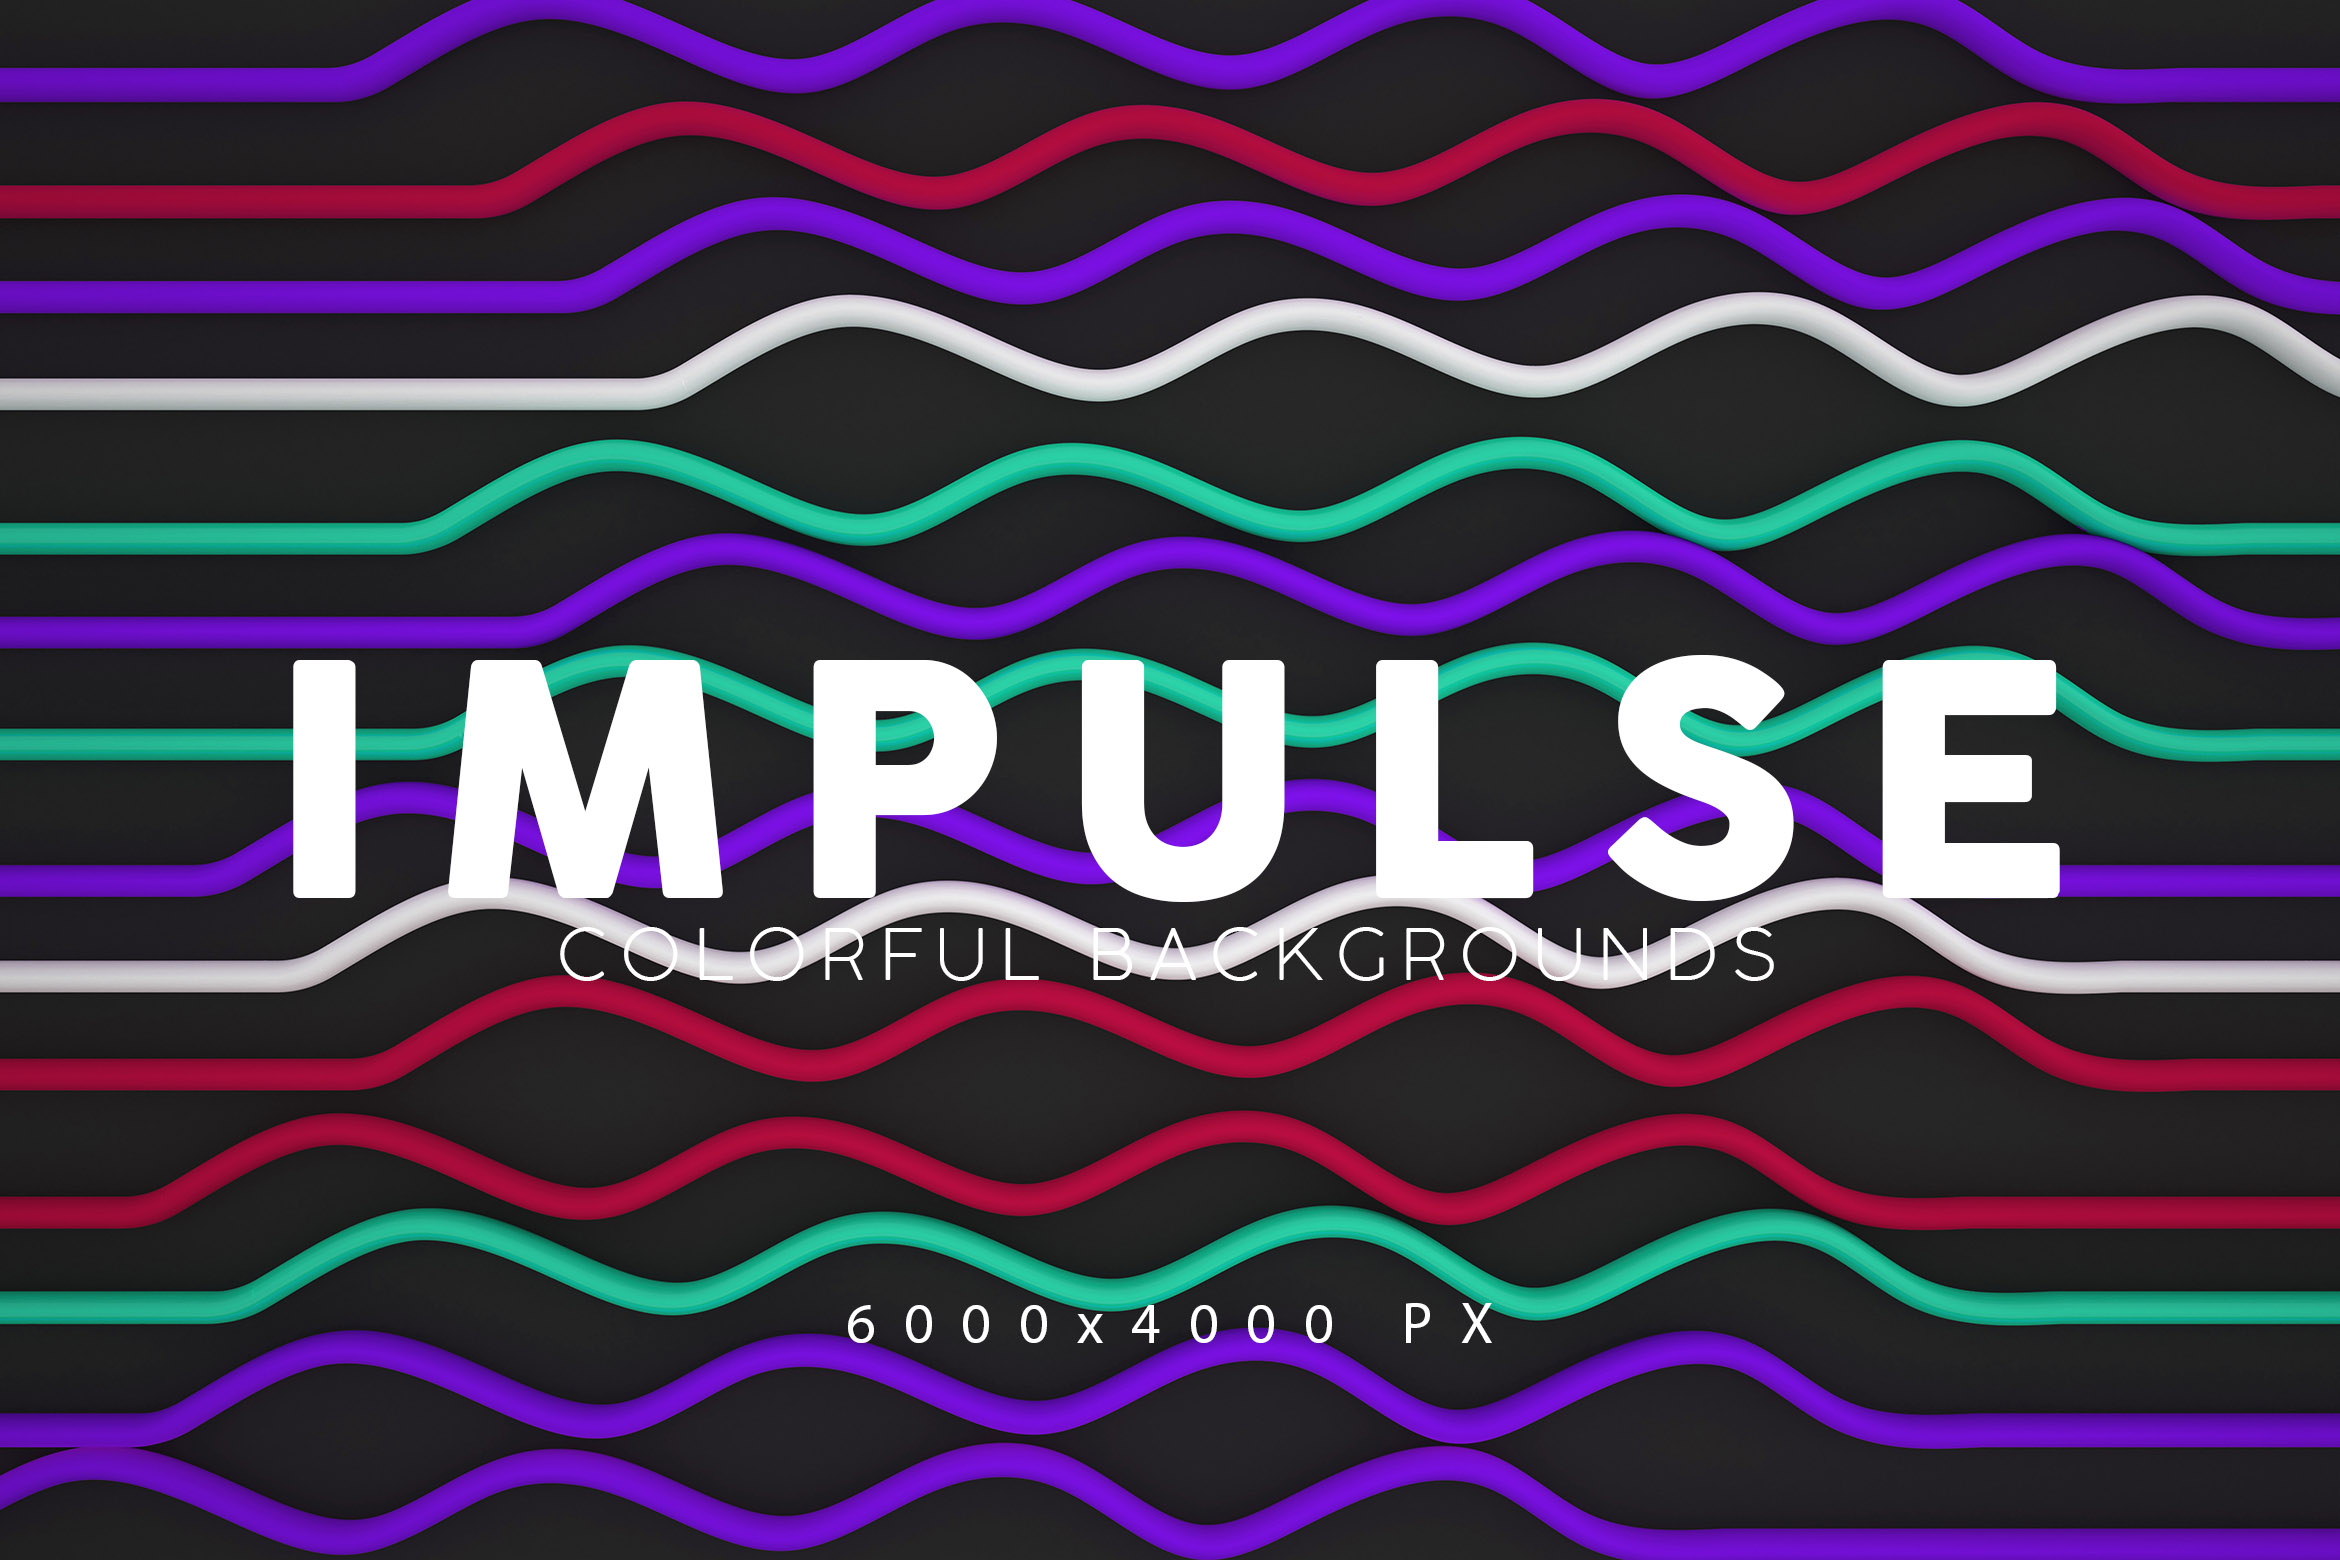 Download Free Impulse Backgrounds Graphic By Artistmef Creative Fabrica for Cricut Explore, Silhouette and other cutting machines.